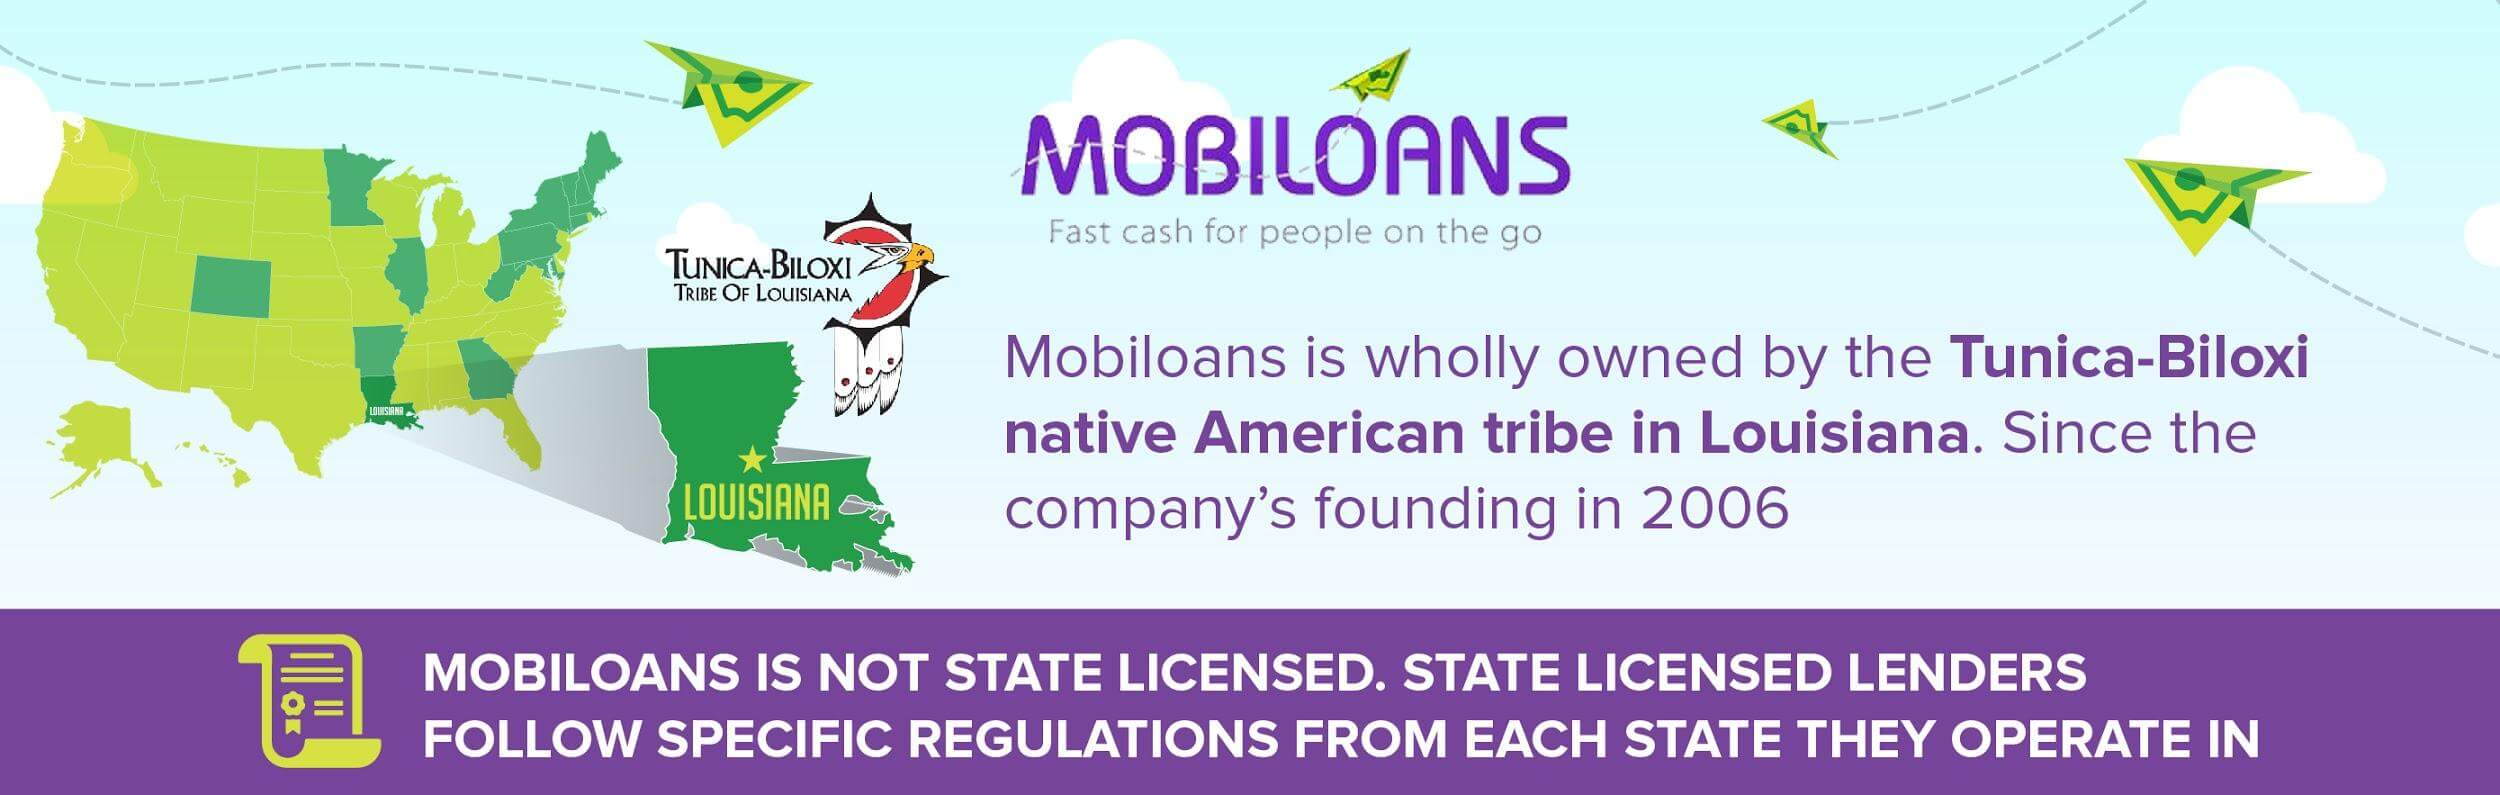 mobiloans ownership and license